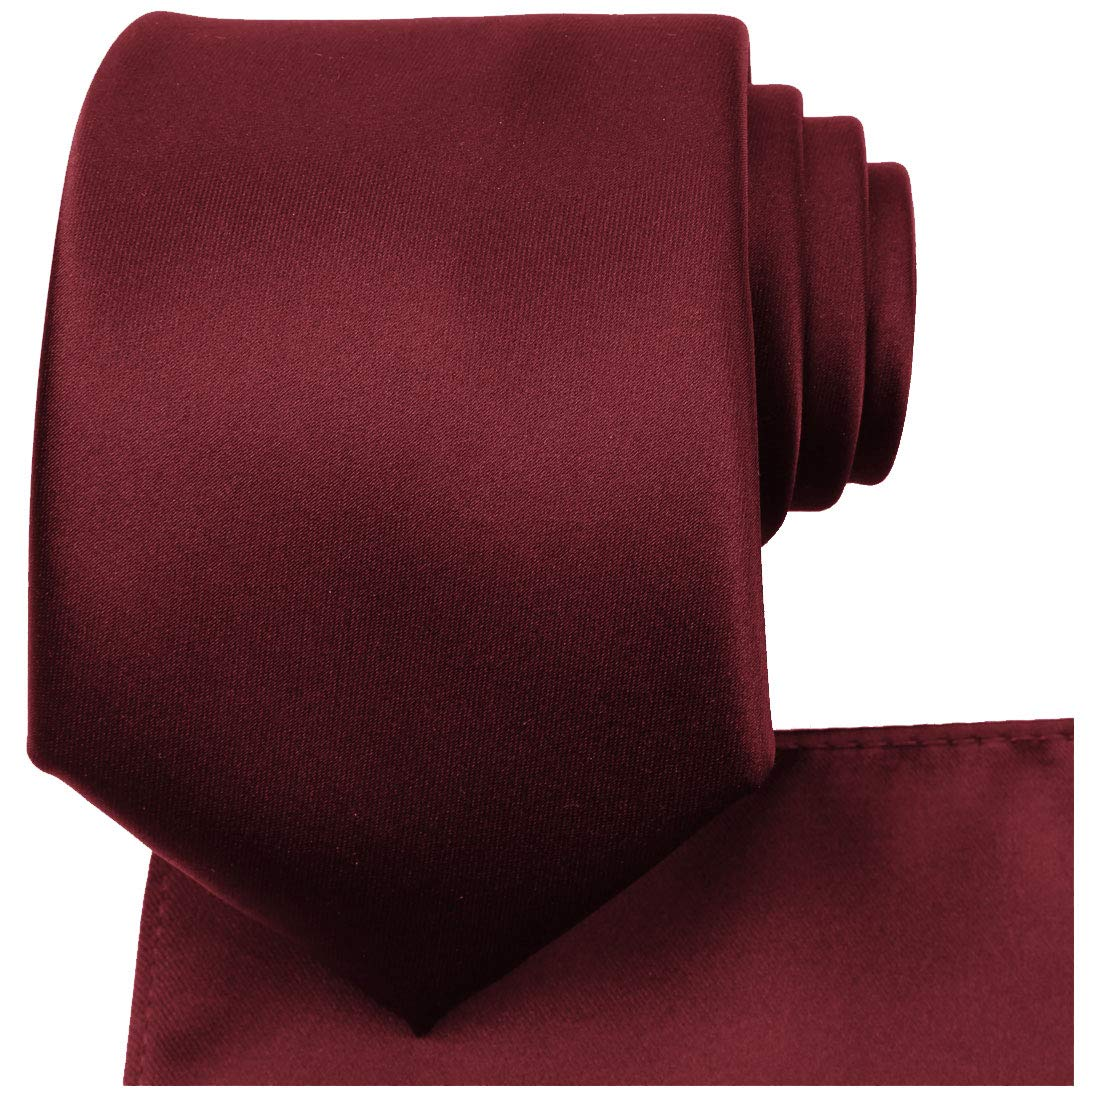 KissTies Burgundy Tie Set Satin Wedding Ties Necktie + Pocket Square by KissTies